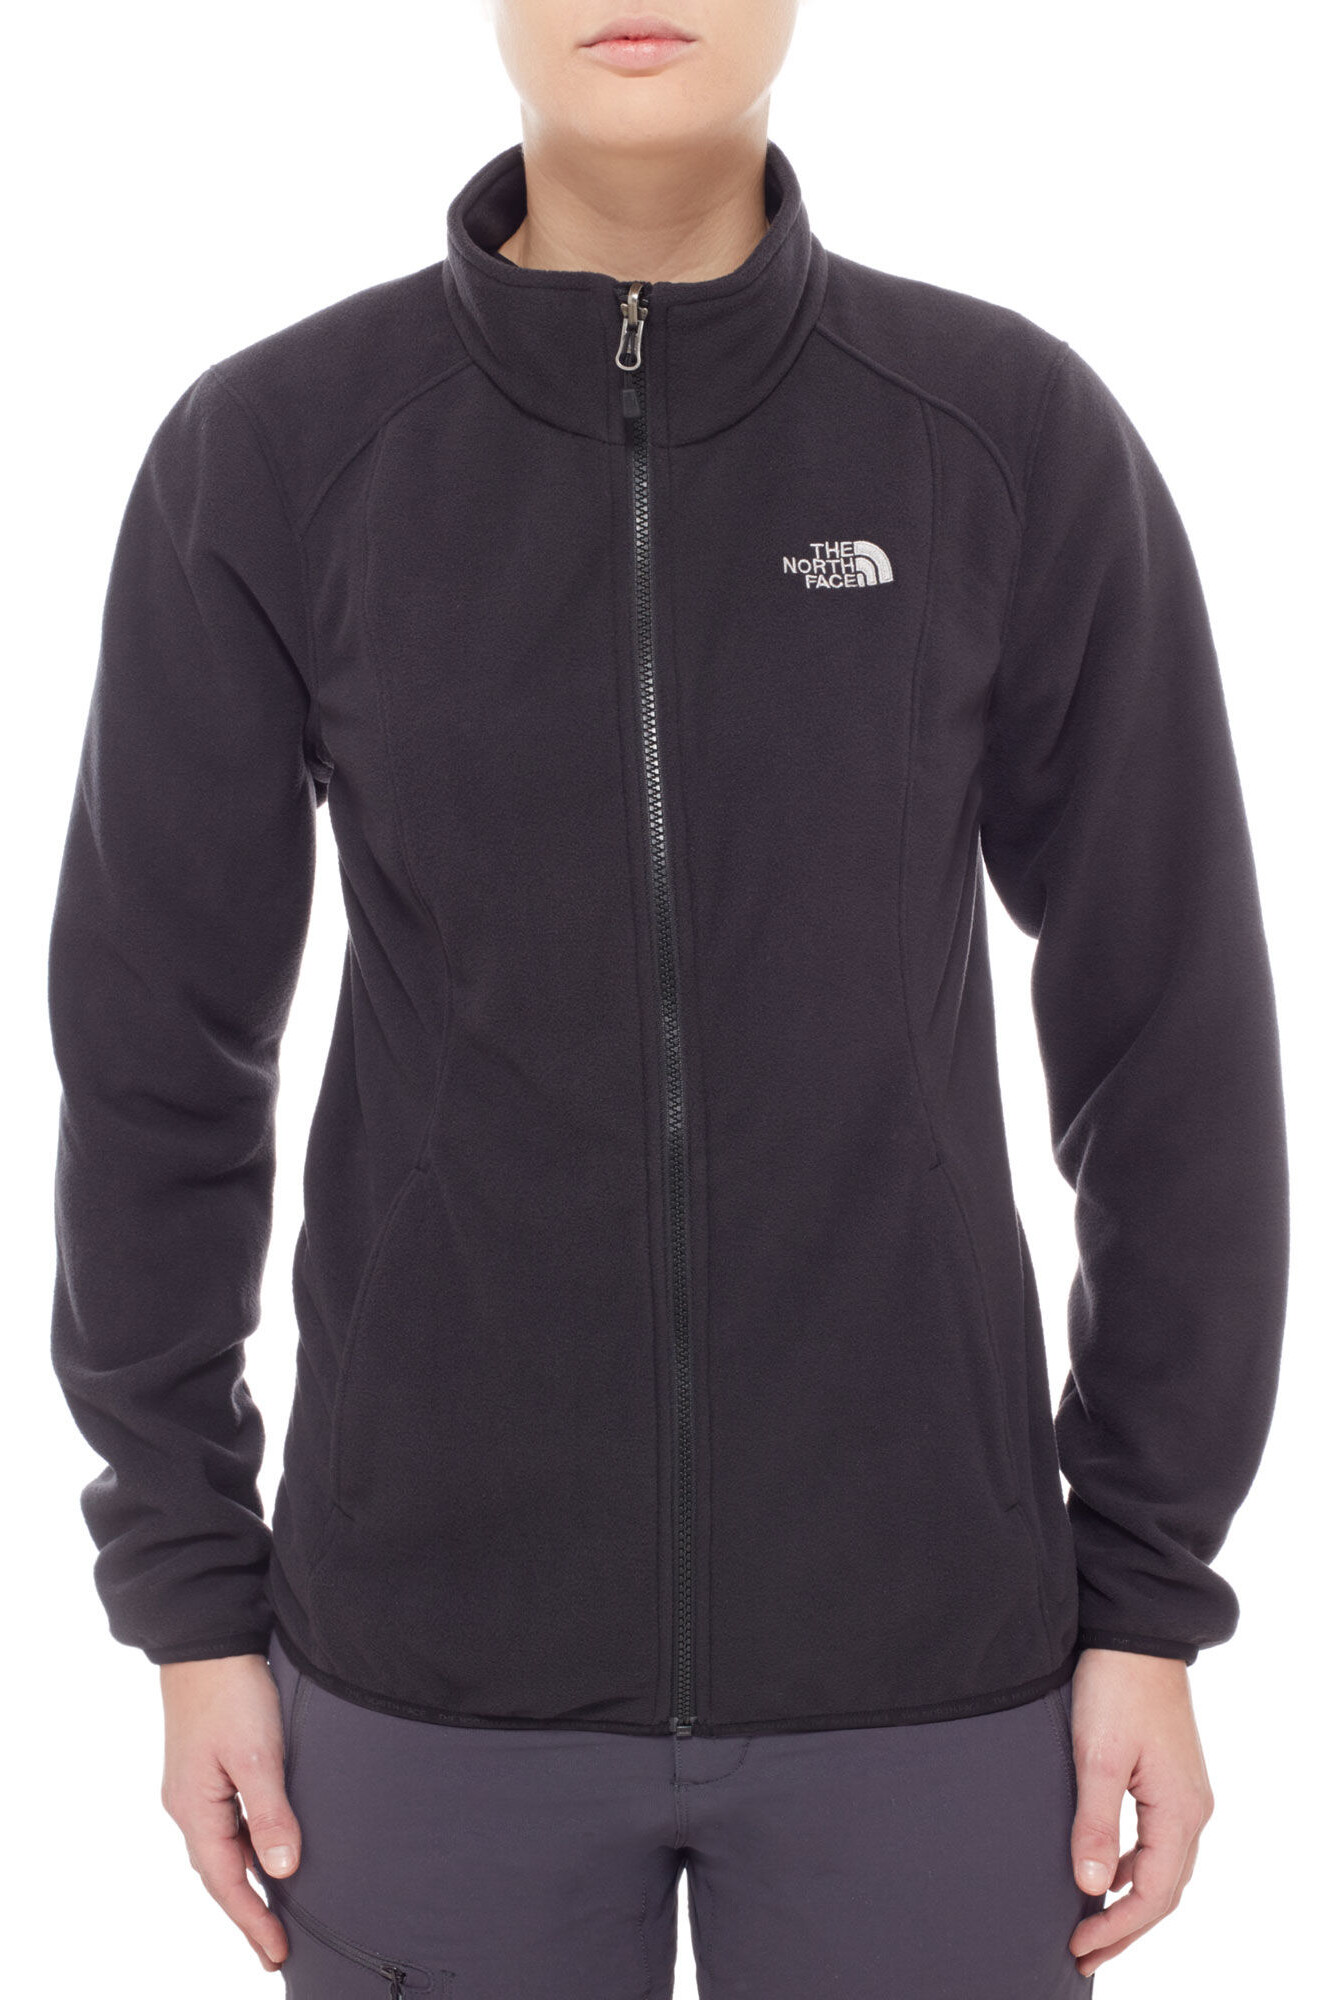 promo code 5adec b83e9 The North Face Evolve II Triclimate Jacket Women tnf black